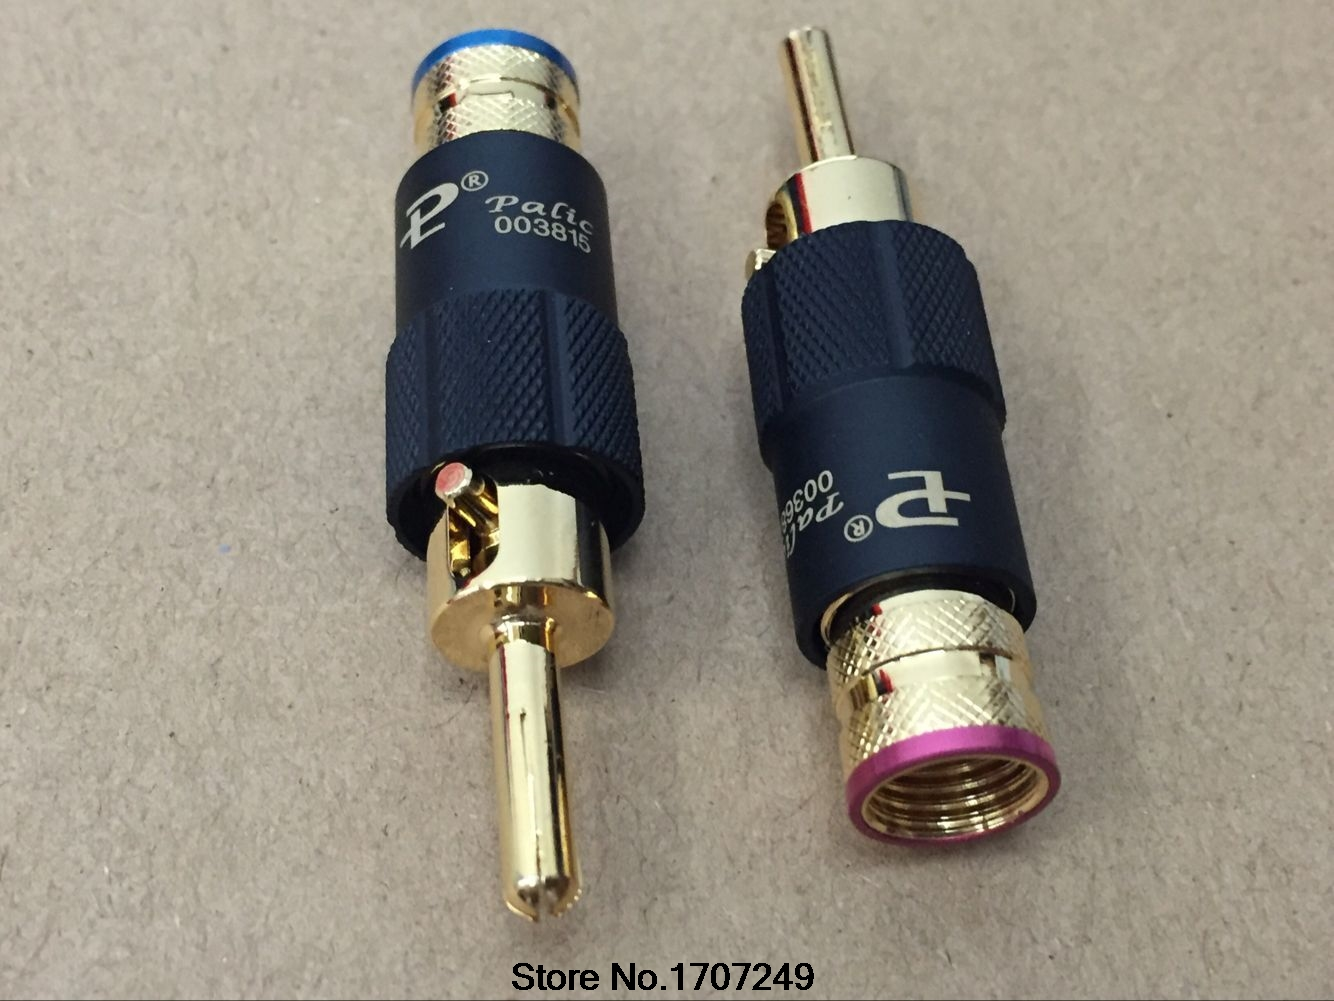 Free Shipping 4pcs PS-109 Self locking type Copper 24K Gold Plated Pailiccs banana plug Audio Connector male adapter hot 4pcs copper gold plated tuning fork banana y spade plug adapter av audio terminals connectors for speaker cable power